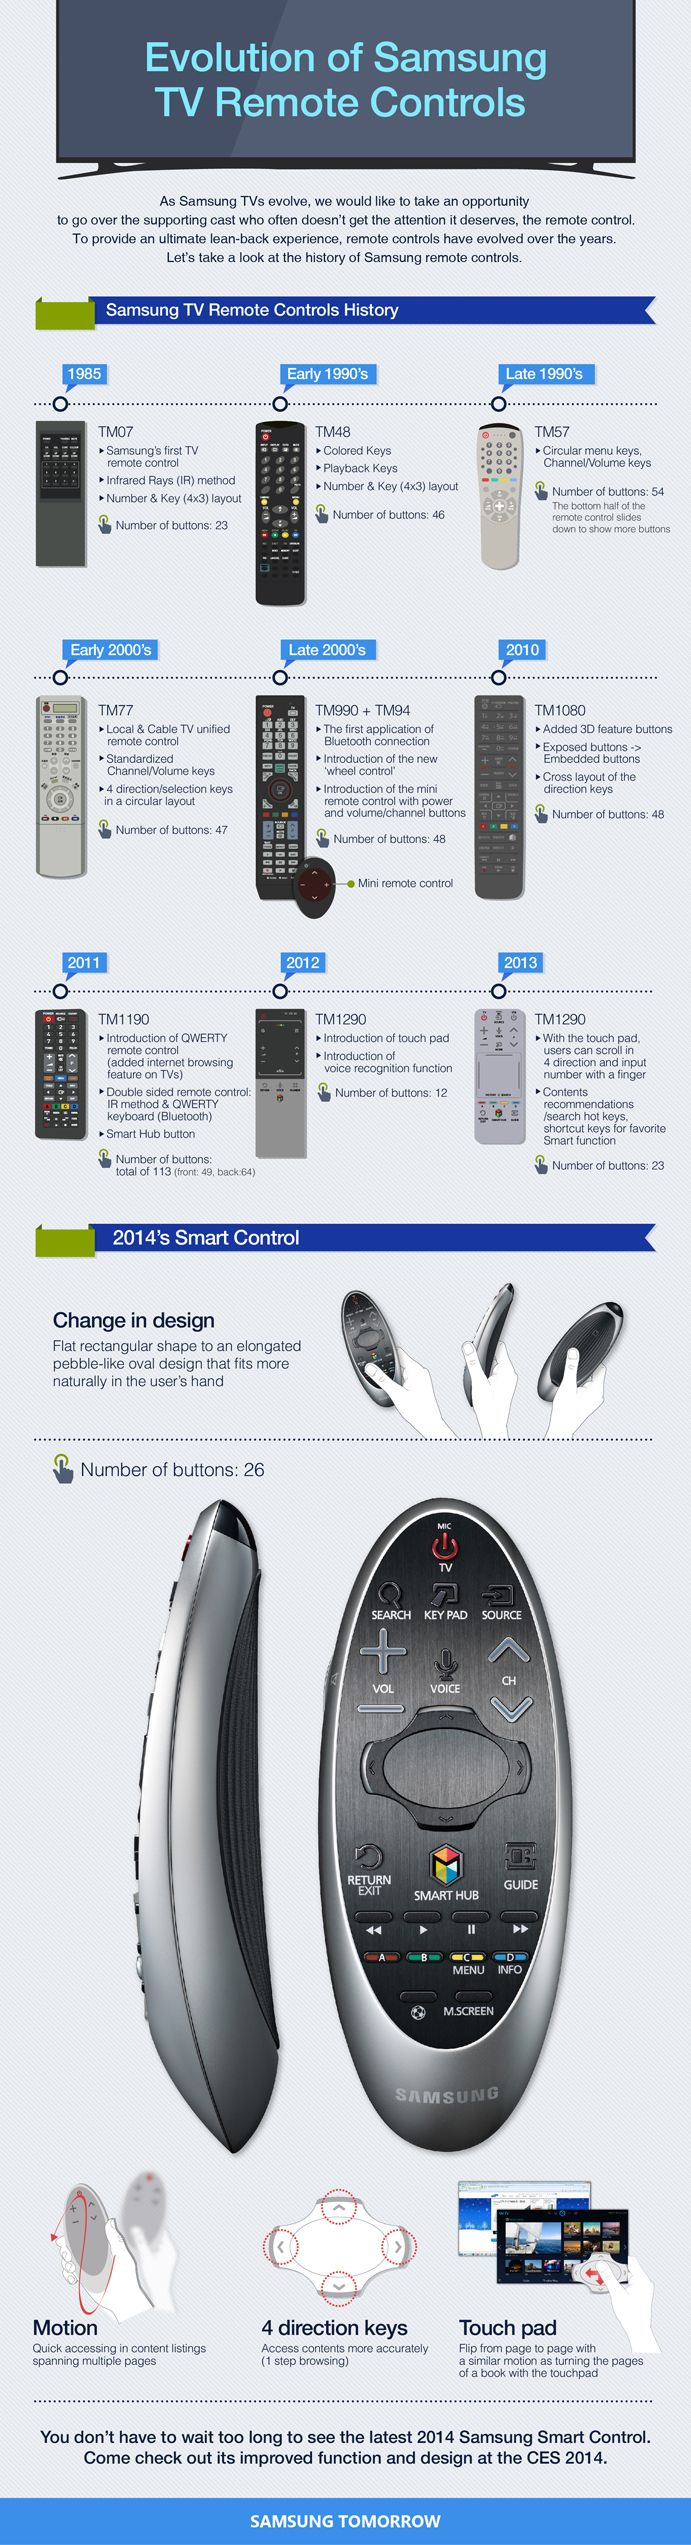 Evolution of Samsung TV Remote Controls - Interesting how the change in the amount of buttons was so abrupt from 2012